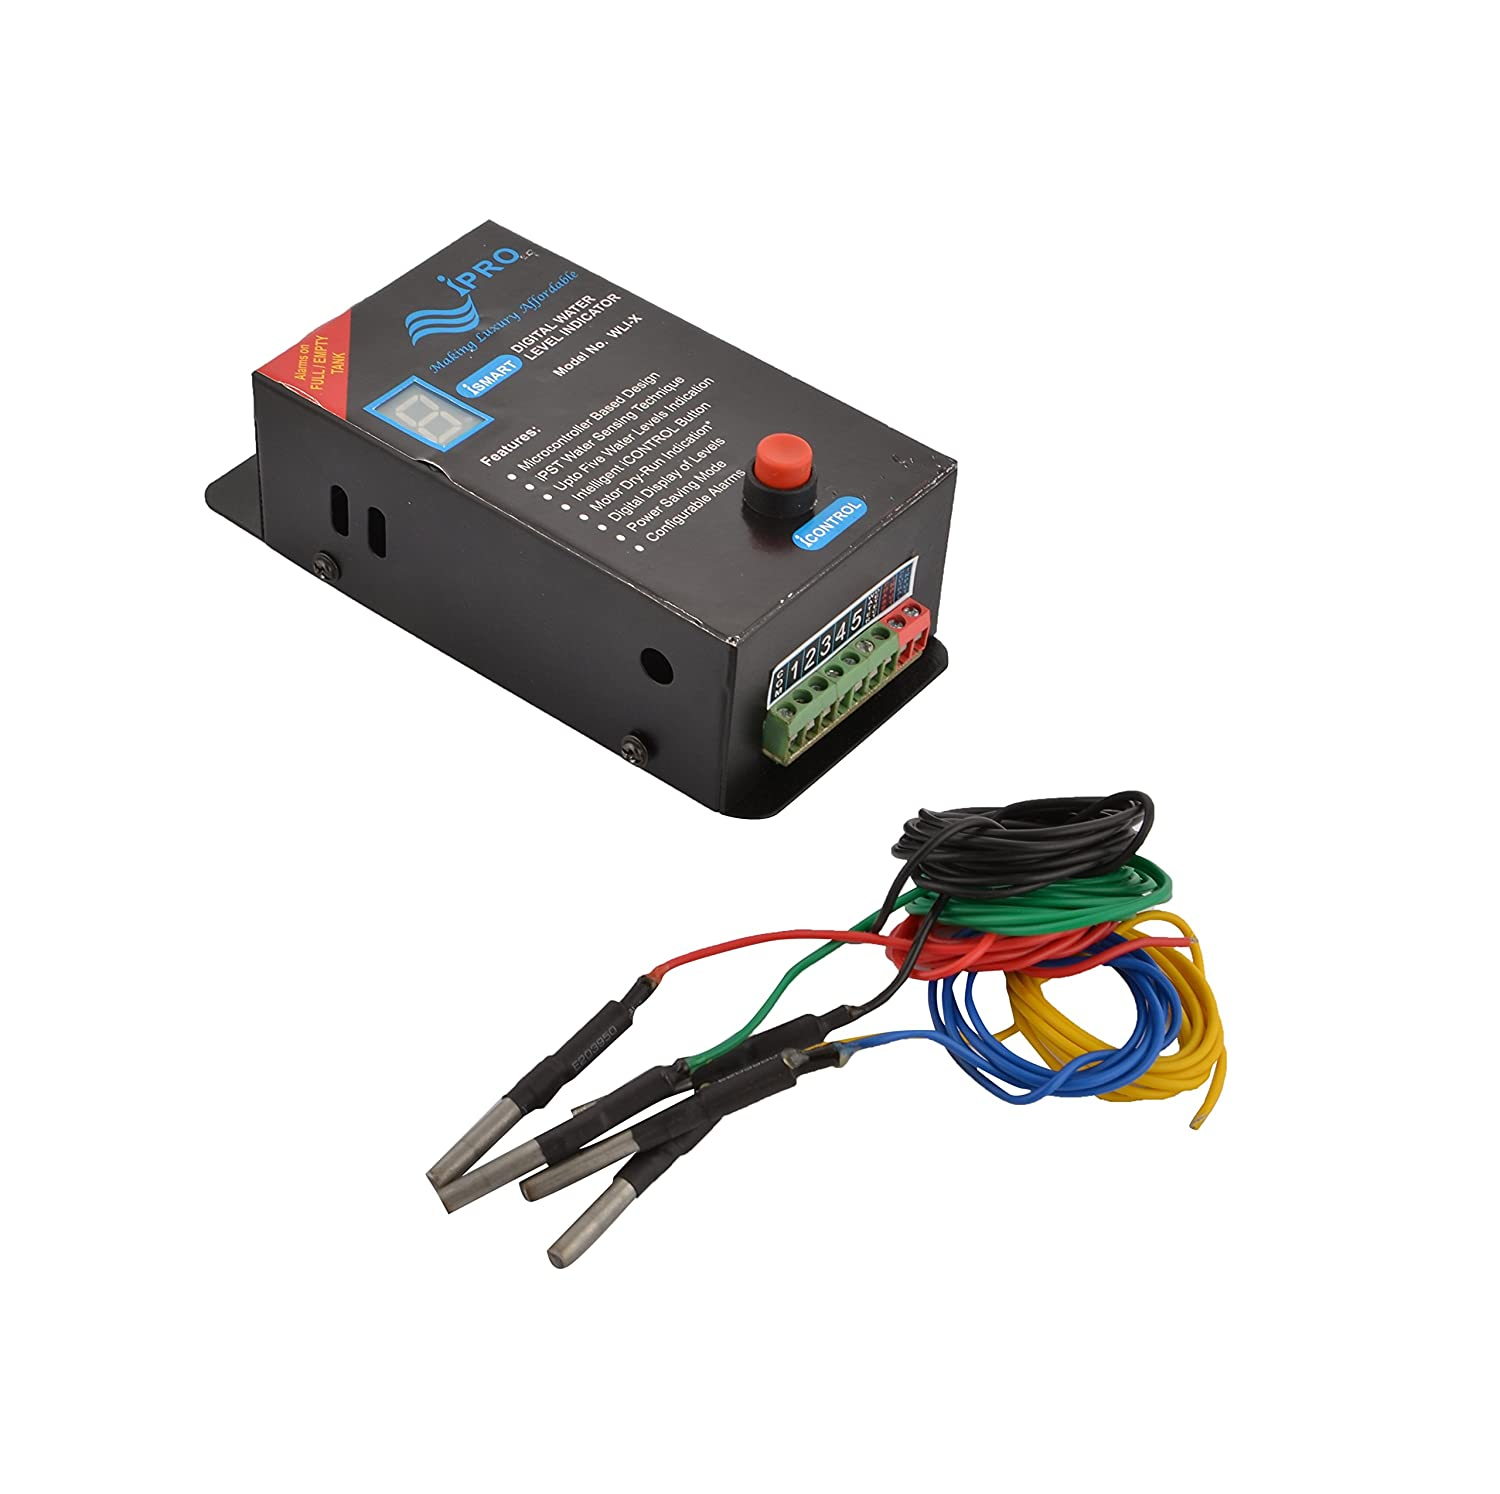 Buy Ipro Digital Ipst Water Level Indicator Alarms On 6 Electronic Circuit That Uses A 7segment Display Sensors Low Full Change Sensor Cleaning Not Required 16x7x5 Cm Black Online At